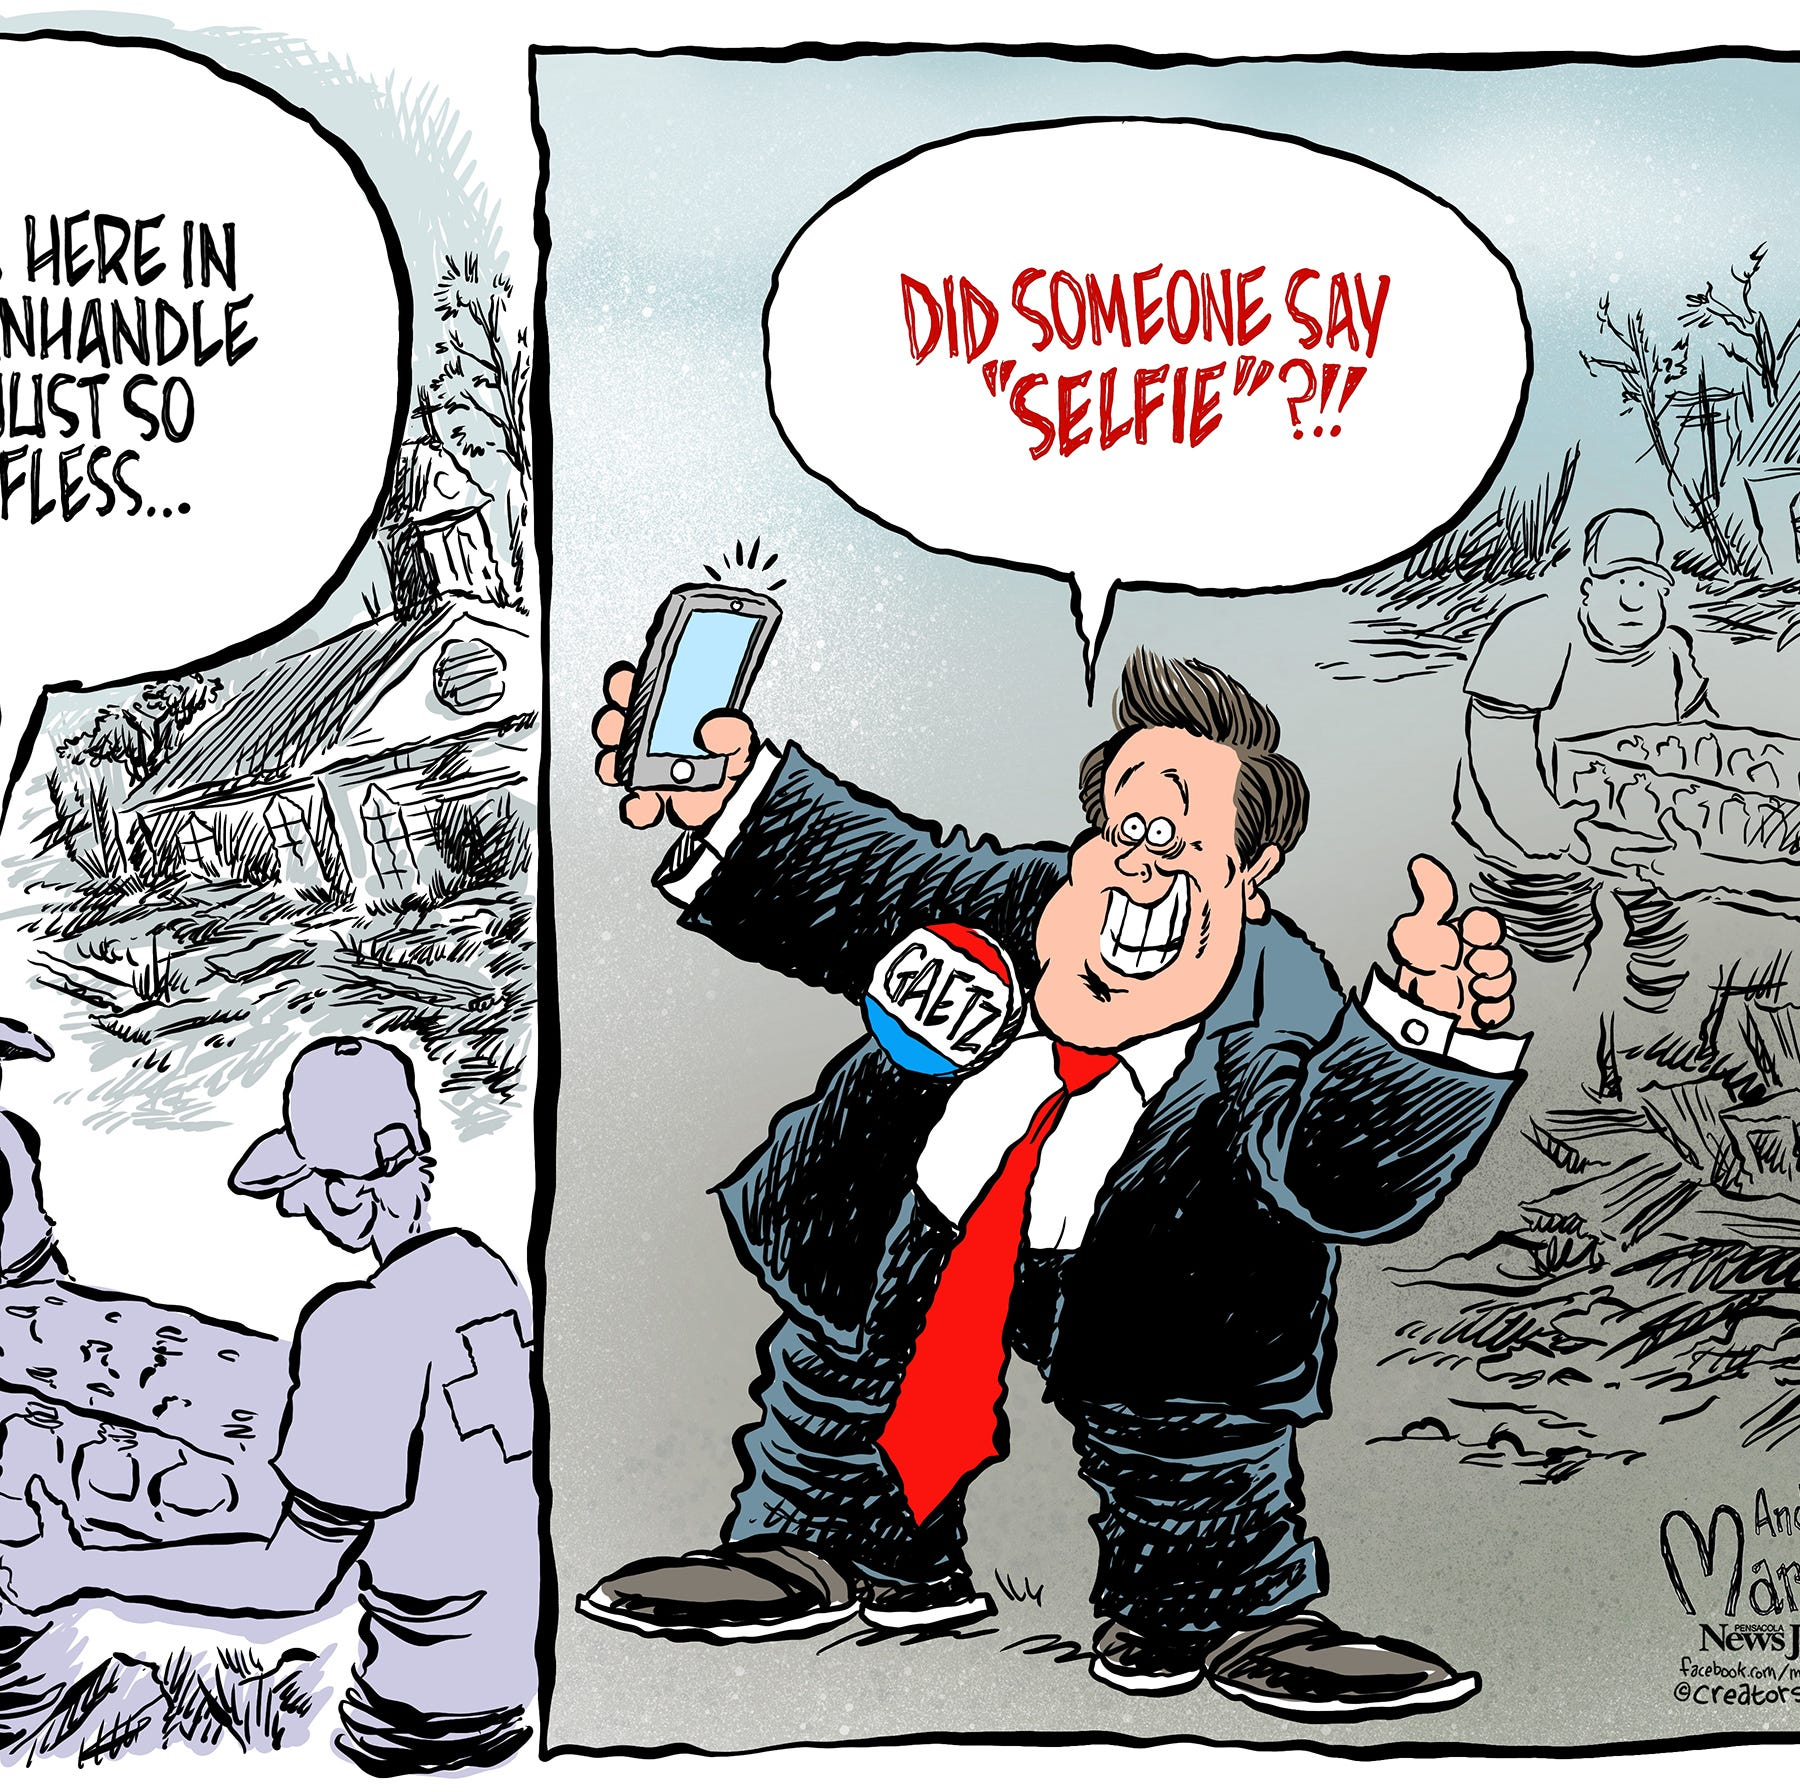 Marlette: When disaster strikes, seek food, water and... selfies?